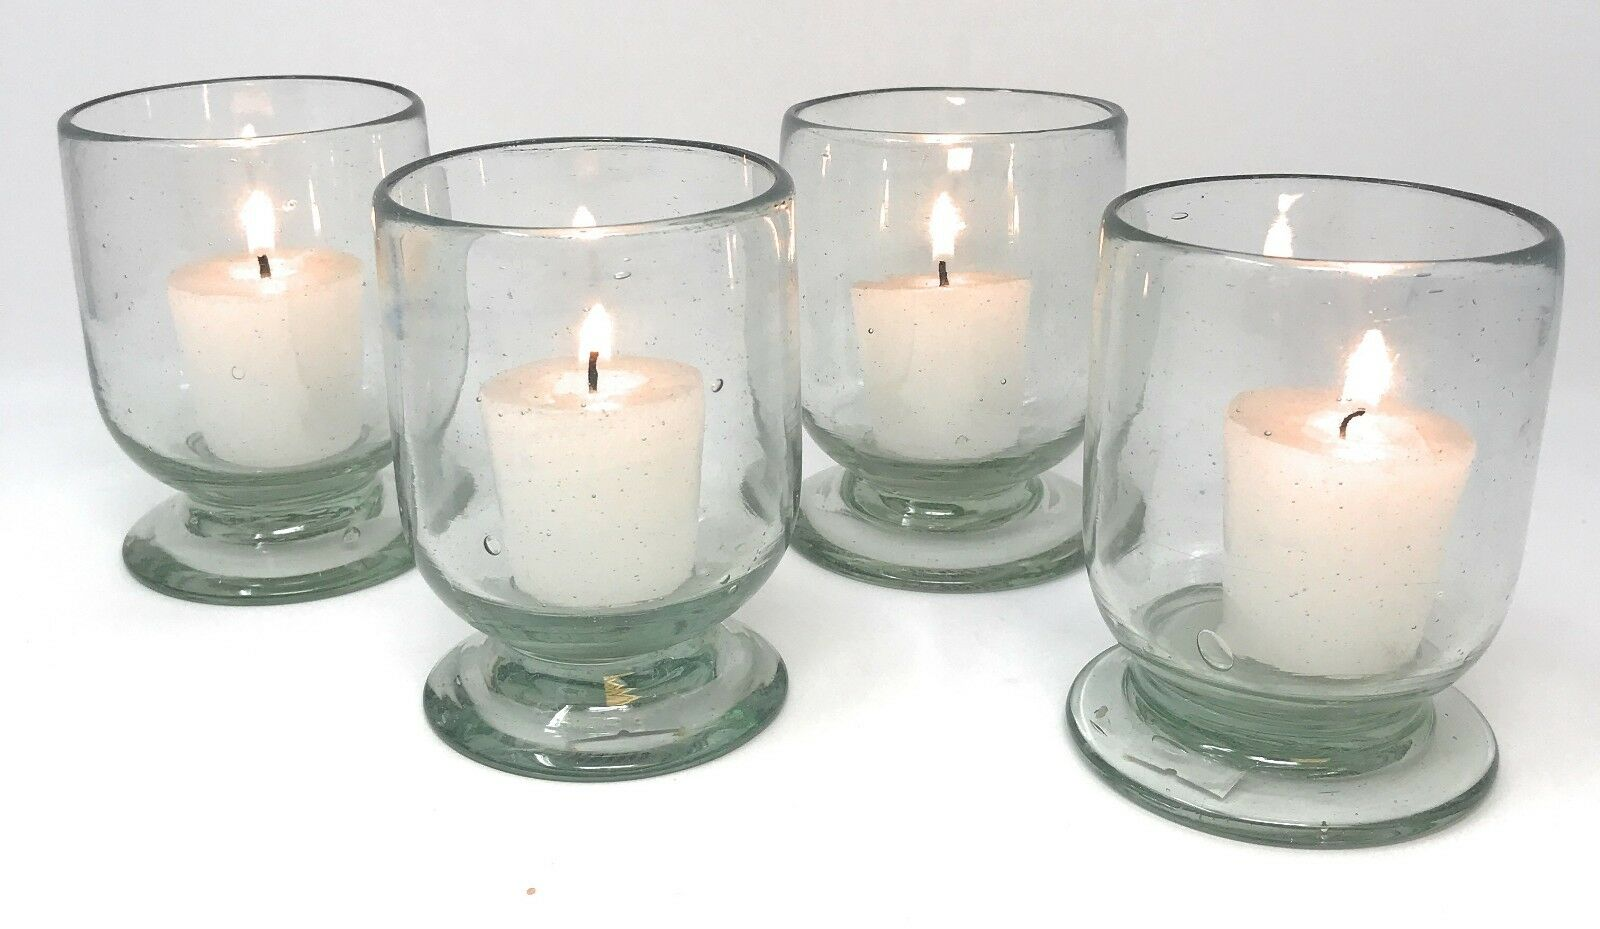 Orion Mexican Glassware Sedona Votive Collection Natural - Set of 4